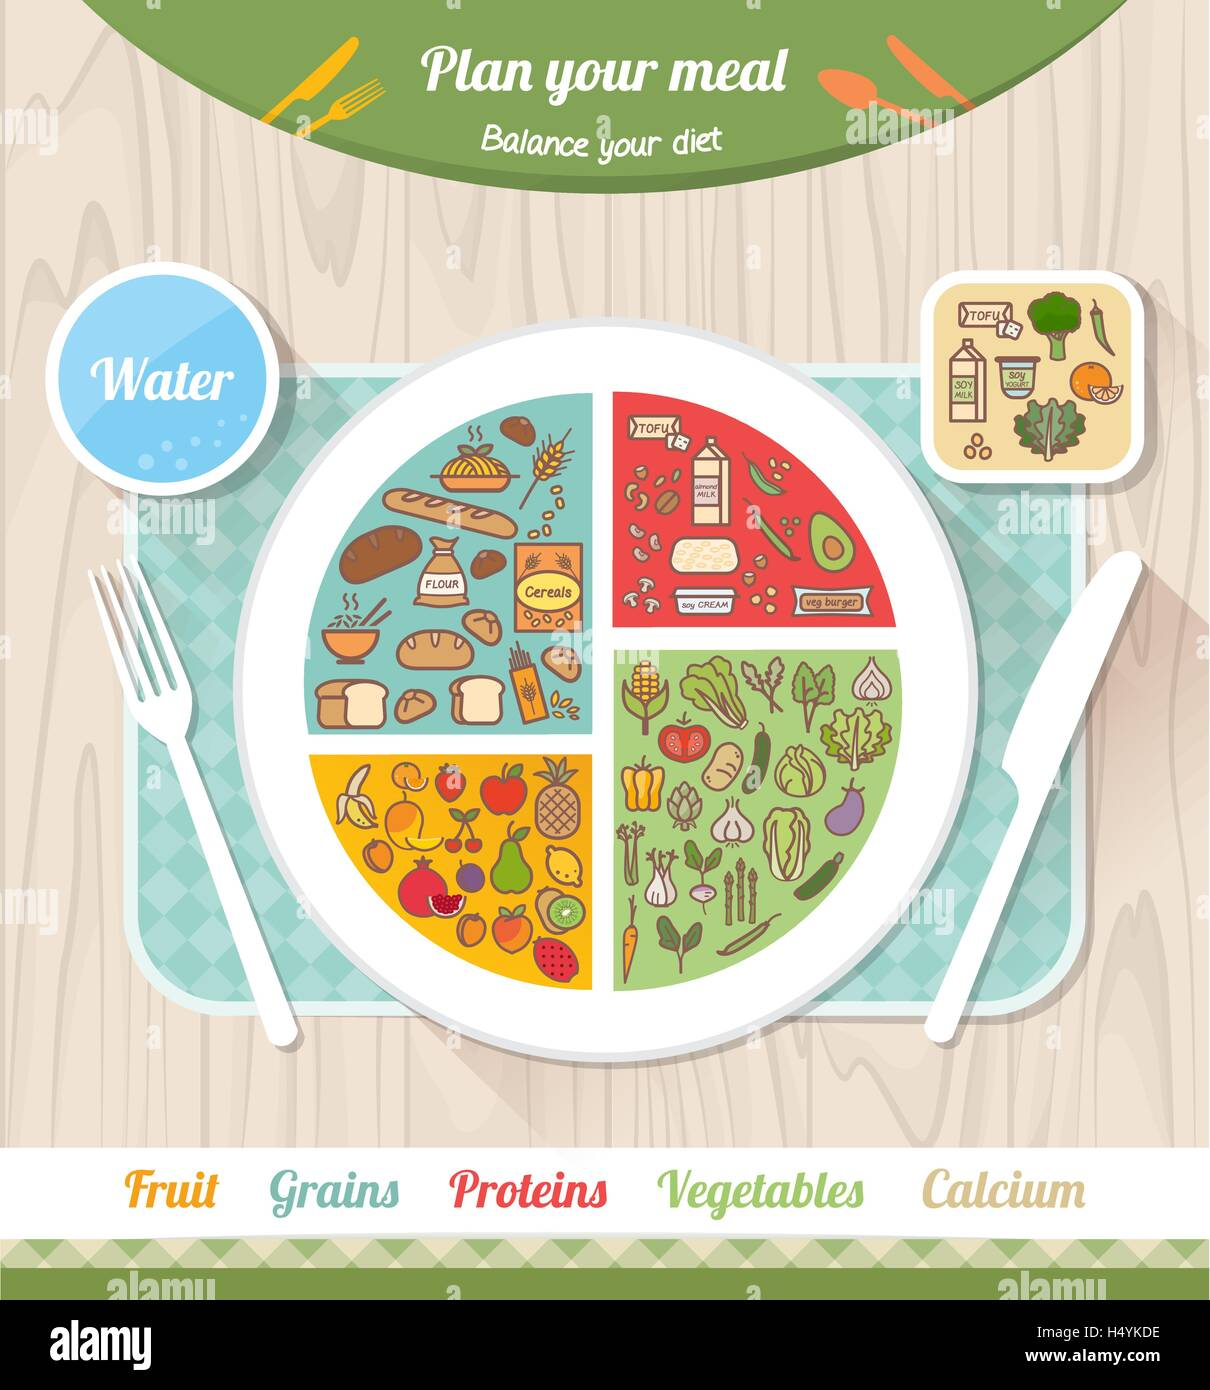 Vegan healthy diet and eatwell plate concept food icons and vegan healthy diet and eatwell plate concept food icons and portions on a pie chart nvjuhfo Choice Image